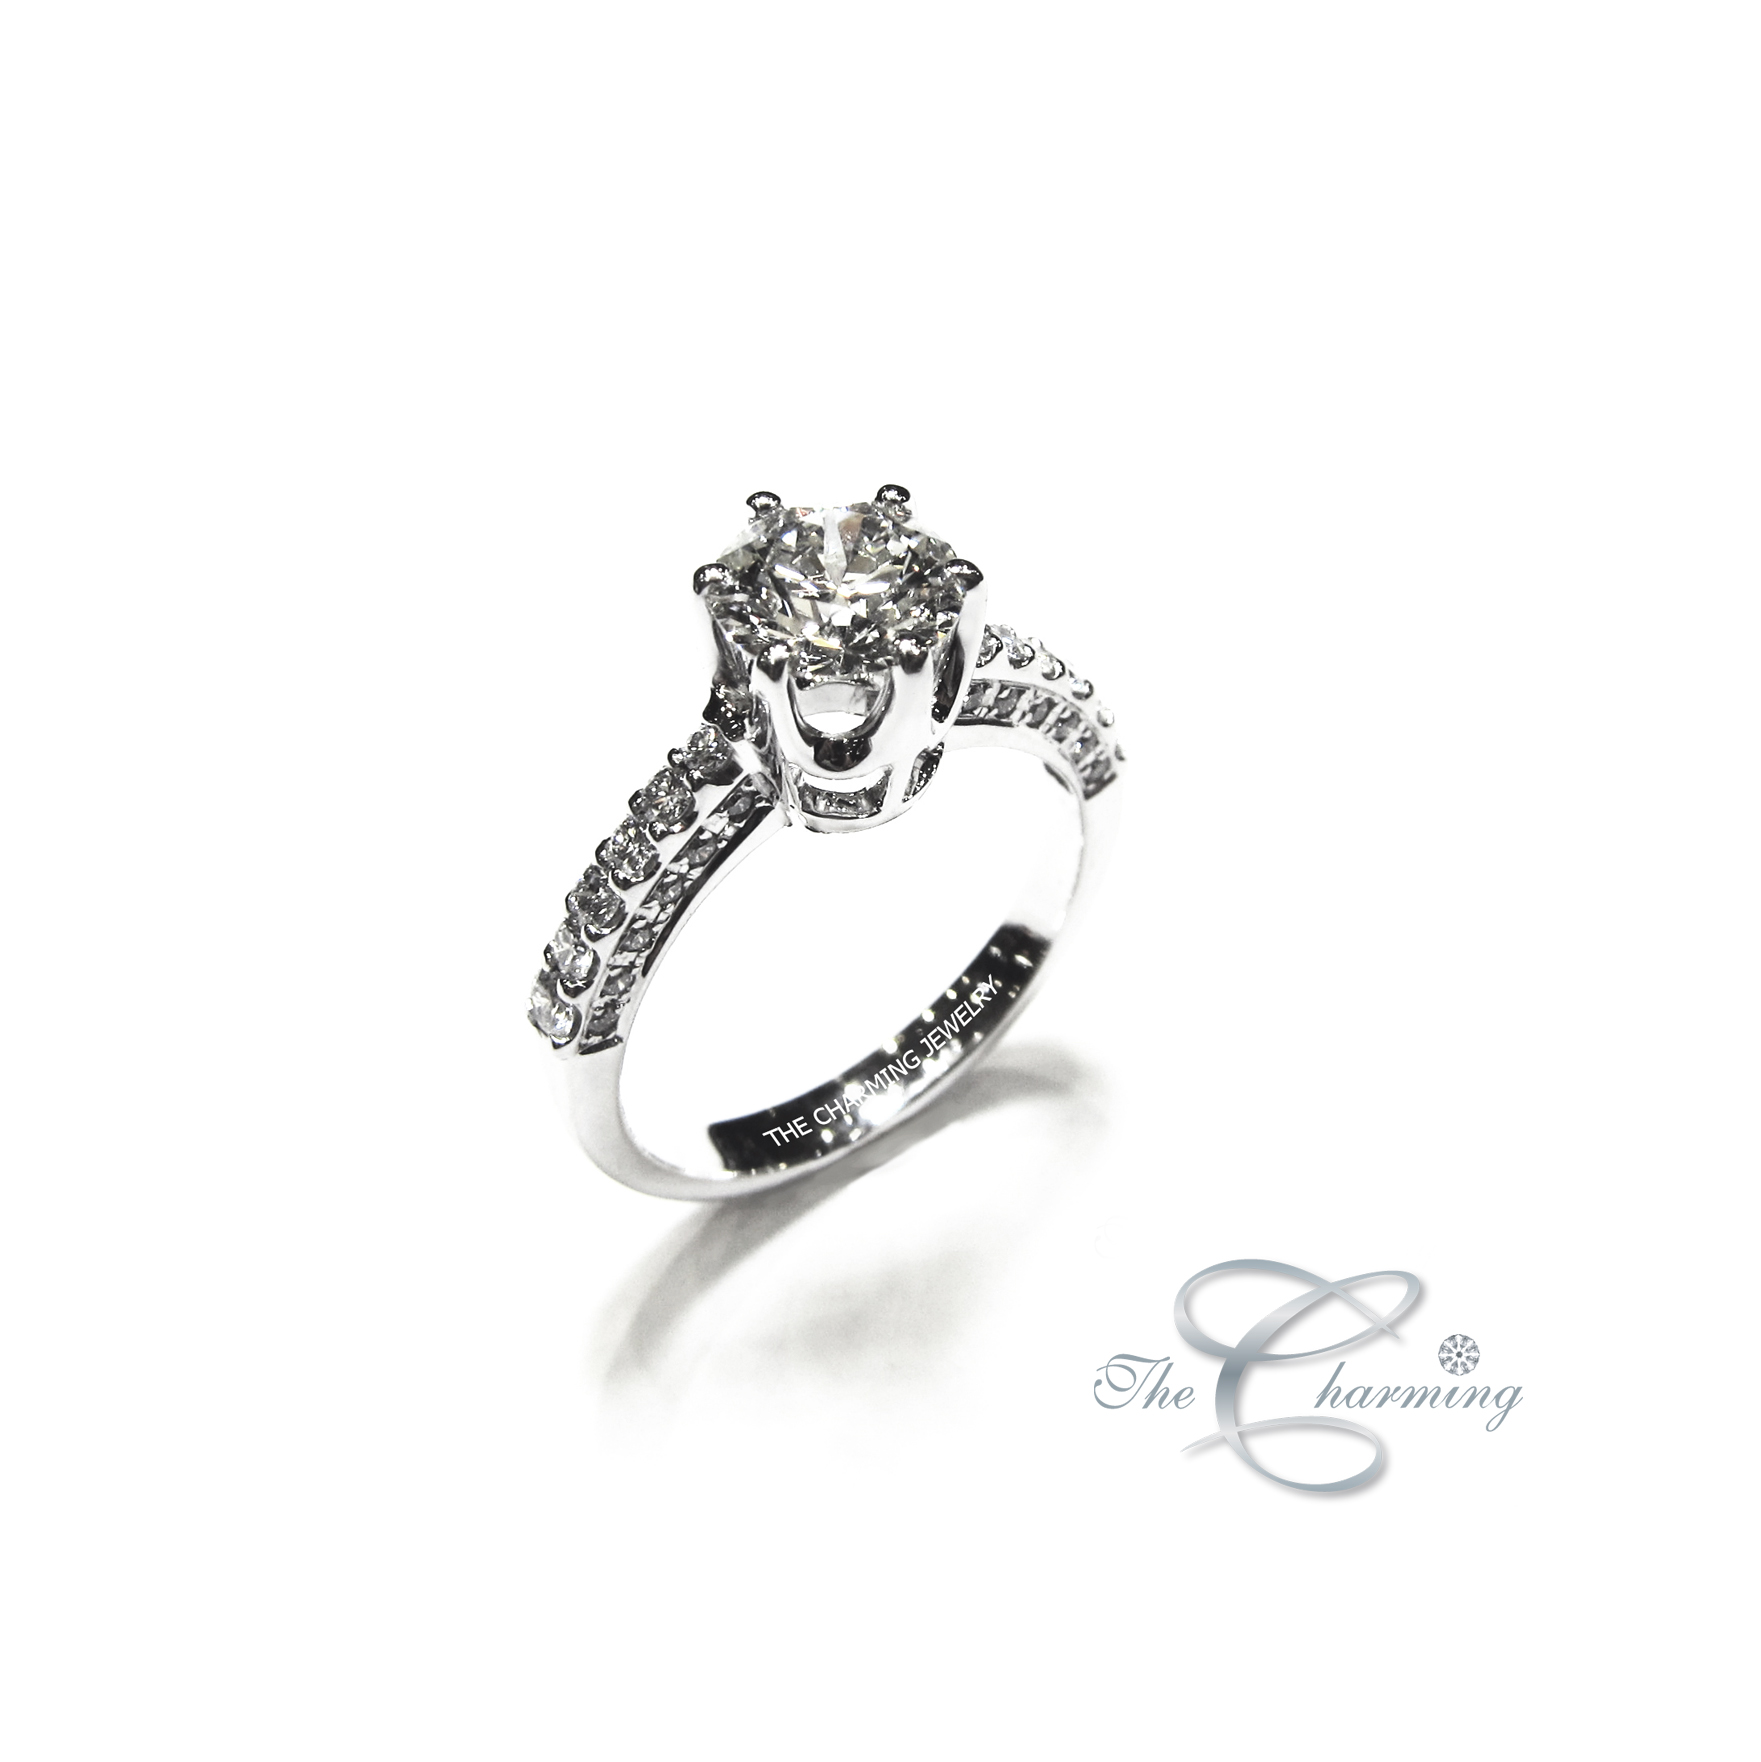 The Charming_solitaire_diamond ring_wedding ring_ringแหวน_r4378